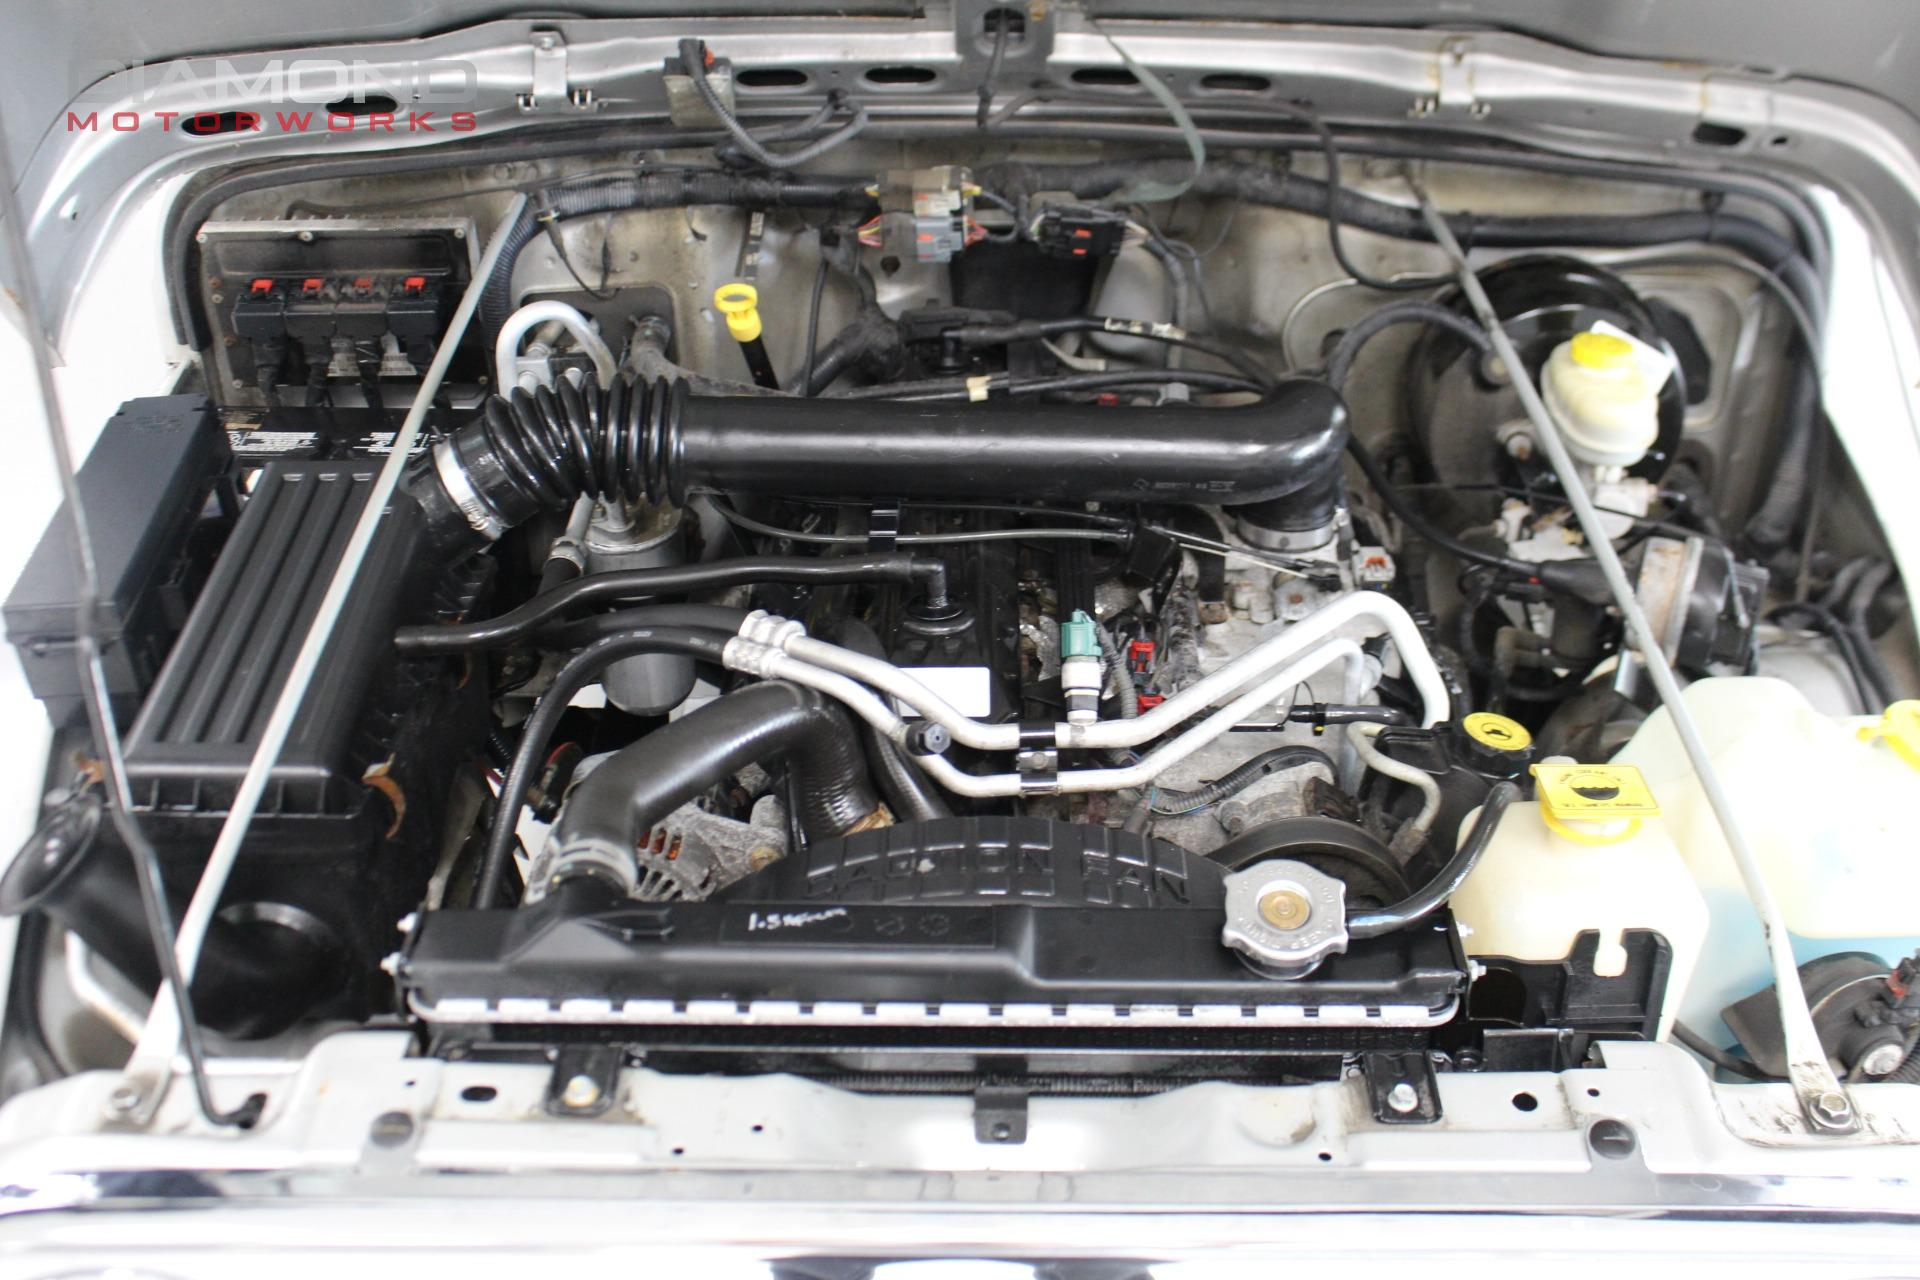 2006 Jeep Wrangler Unlimited Stock 712445 For Sale Near Lisle Il Fuel Filter Used